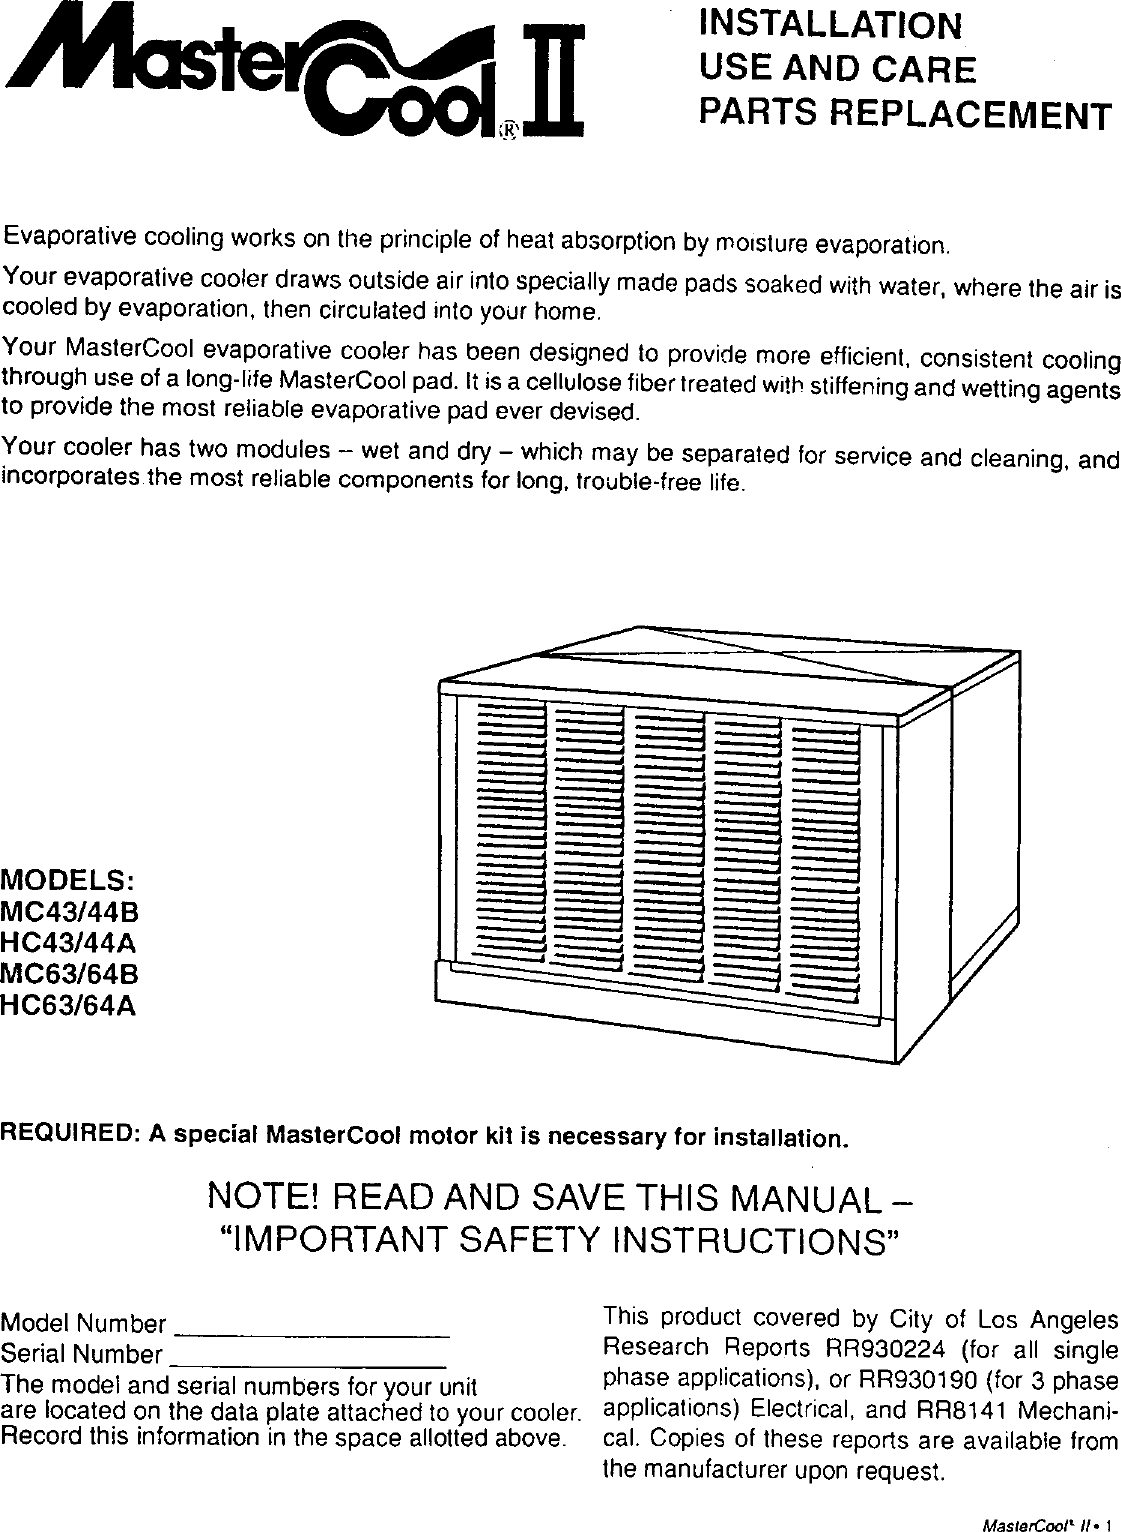 Adobeair Evaporative Cooler Manual L9070130 Mastercool Motor Wiring Diagram